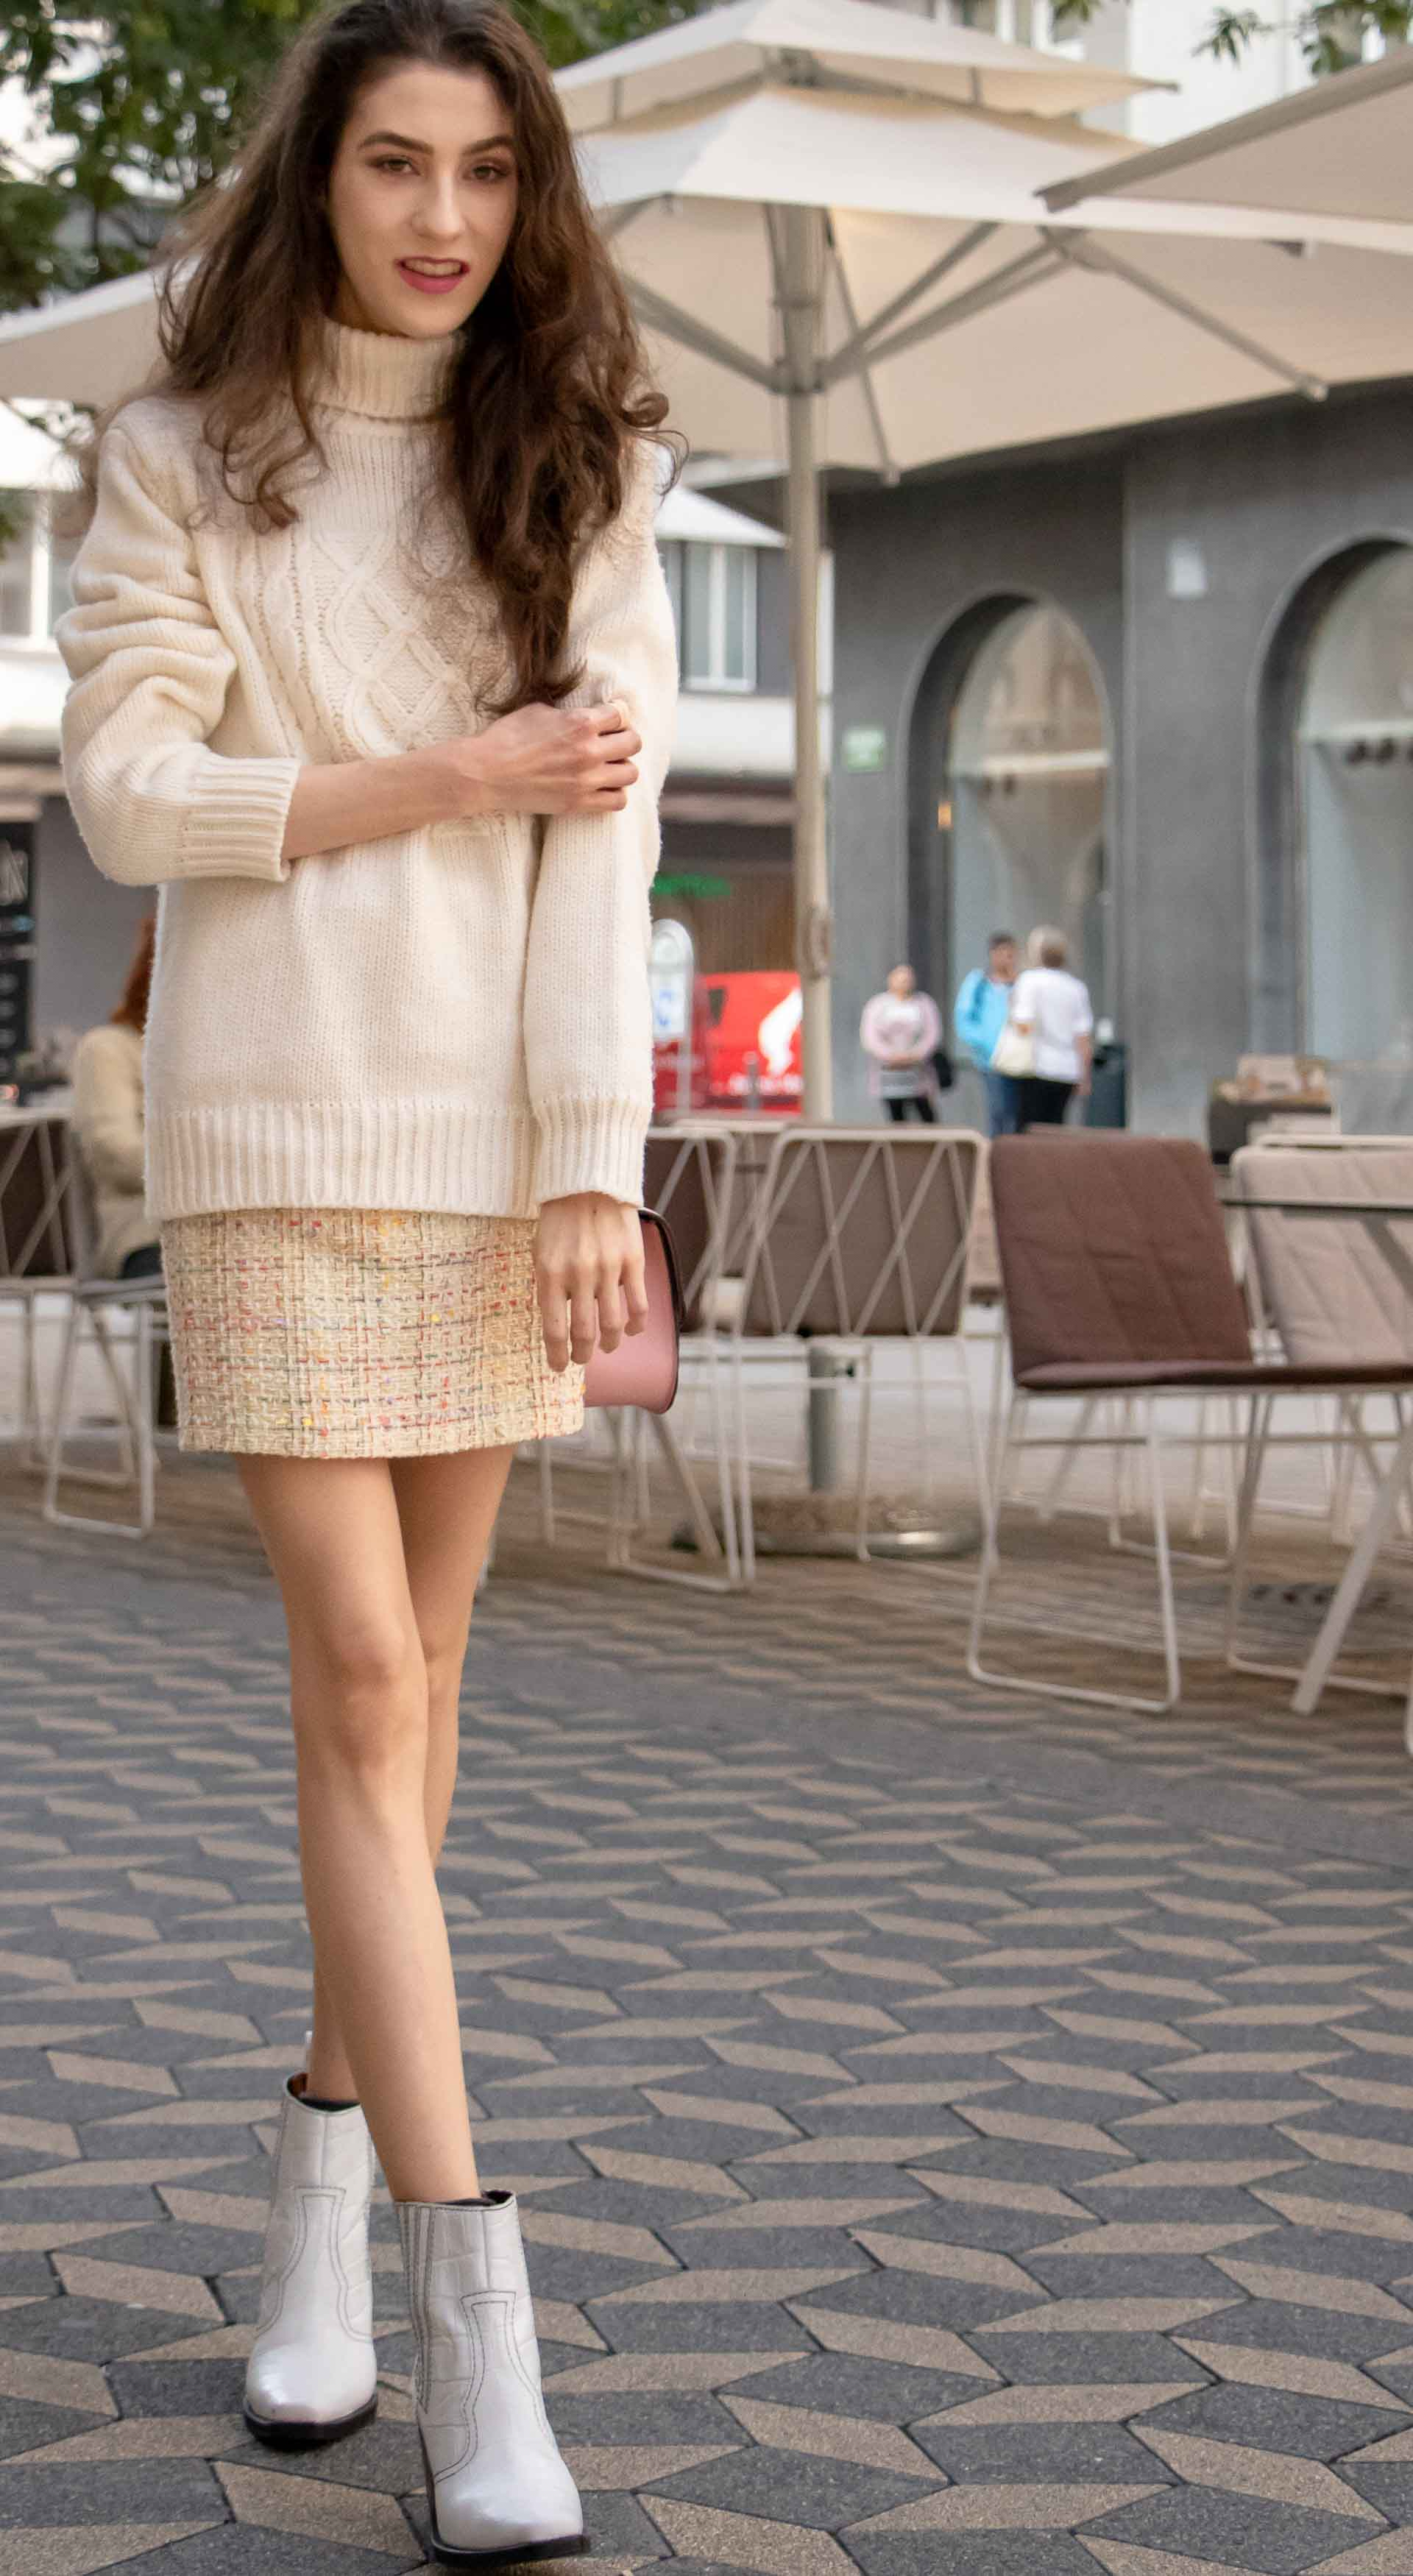 Beautiful Slovenian Fashion Blogger Veronika Lipar of Brunette from Wall dressed in white Ganni Western boots, yellow tweed skirt, white turtleneck sweater, chain strap shoulder bag for autumnal brunch